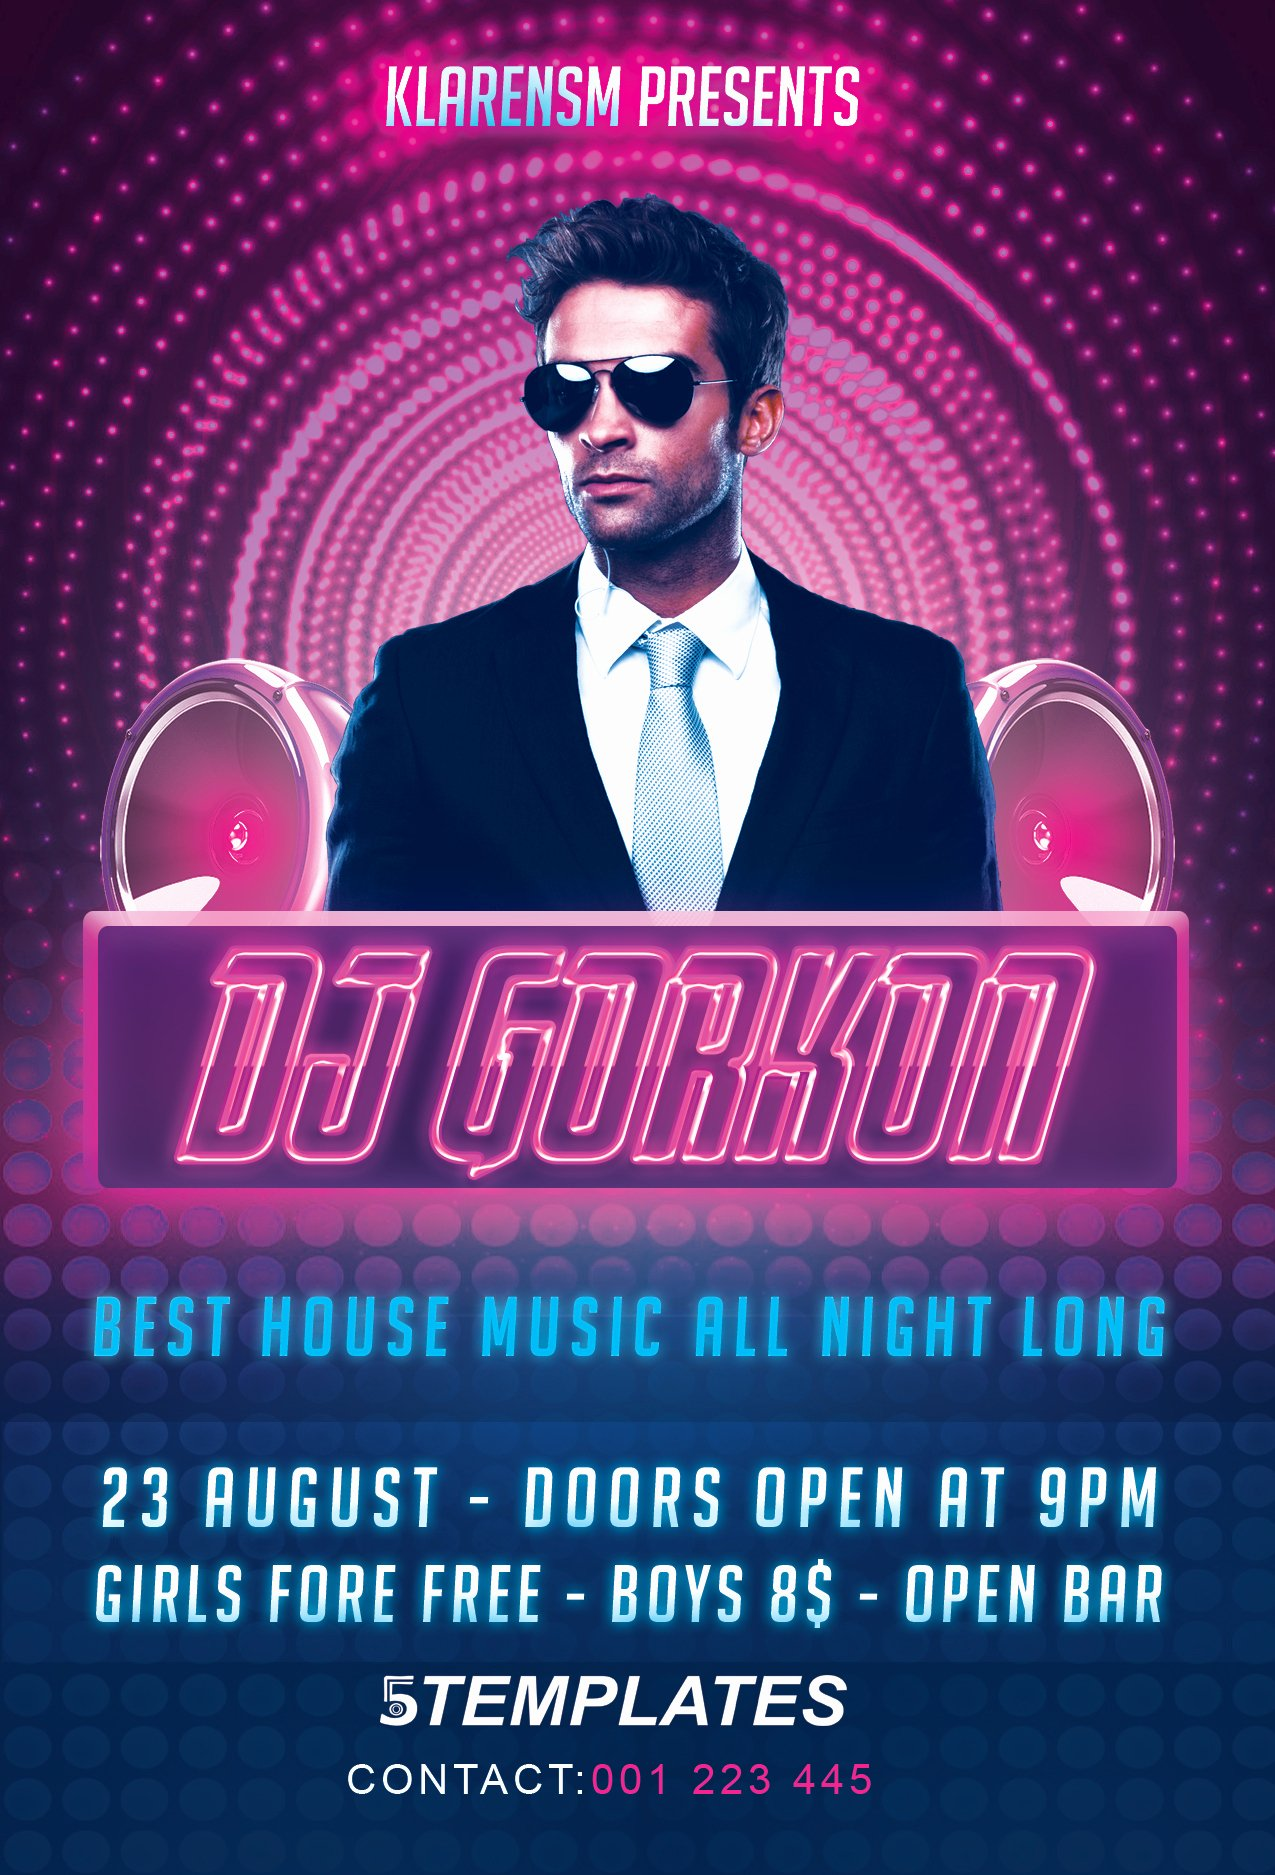 Dj Flyer Template Free Beautiful Guest Dj Flyer Free Psd Template by Klarensm On Deviantart